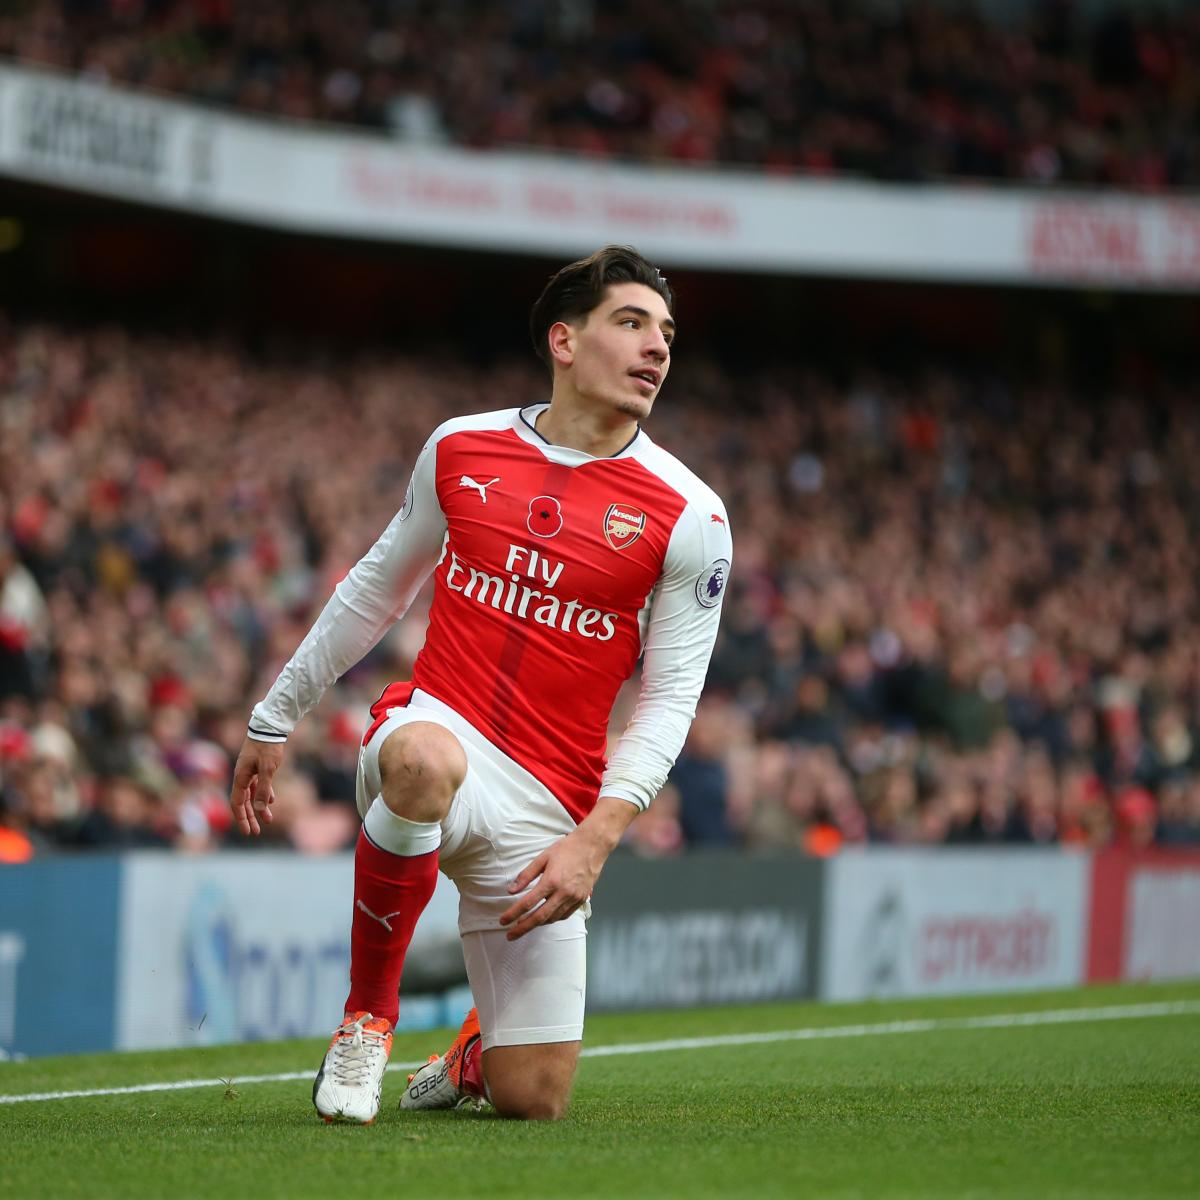 Reports Arsenal Were Ready To Sign Lucas: Arsenal Transfer News: Latest Rumours On Hector Bellerin